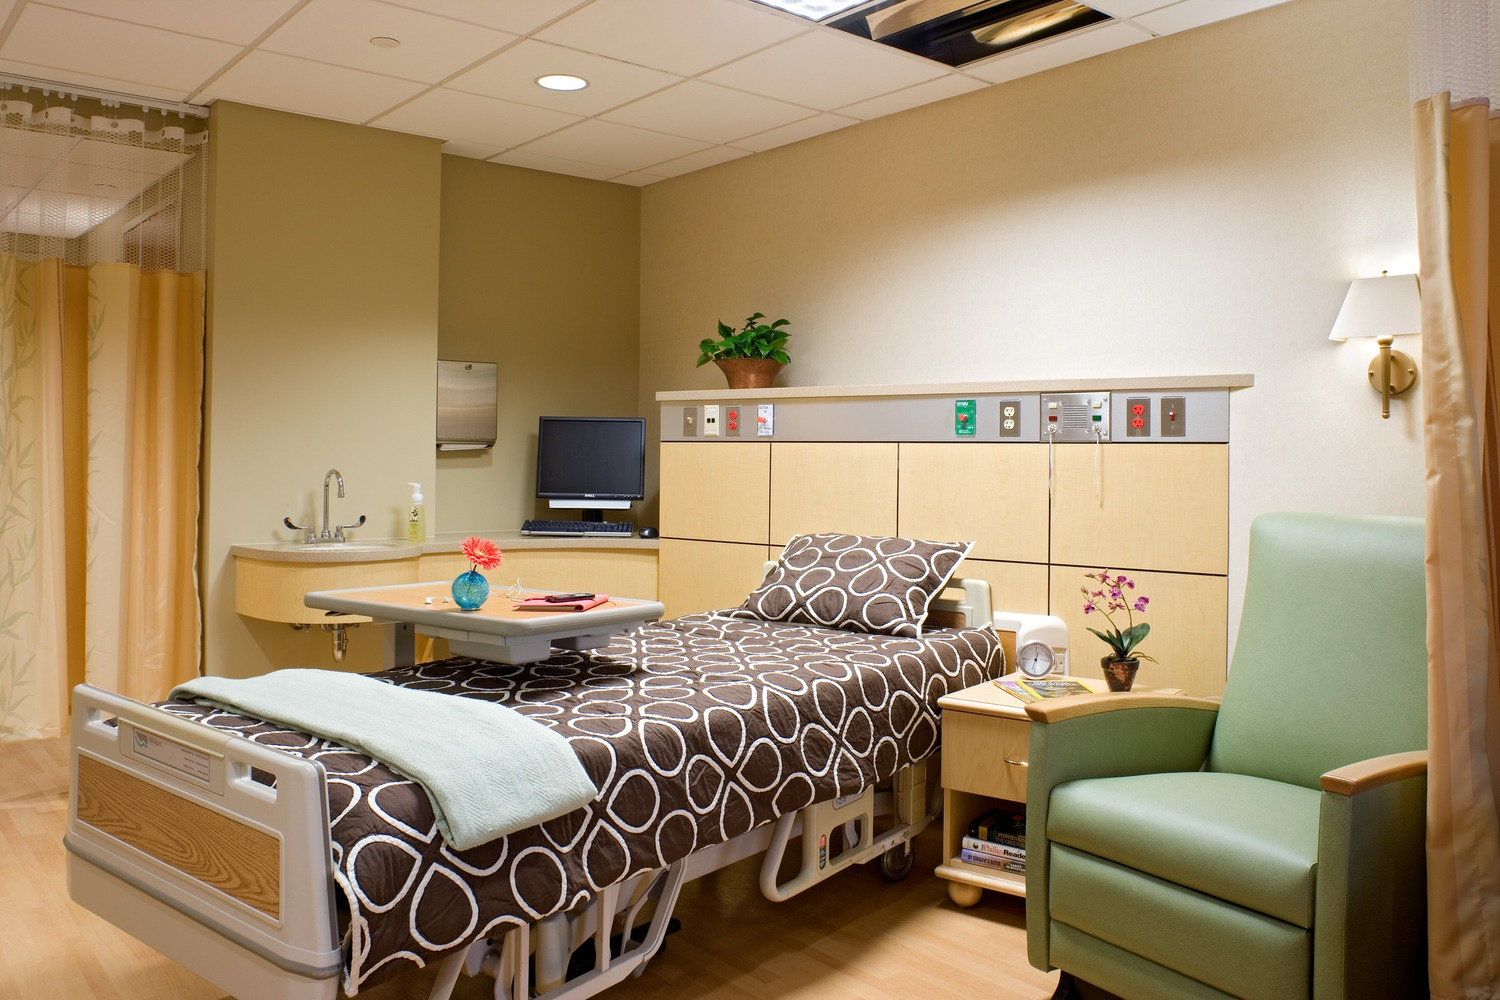 Private hospital room with headwall overbuild